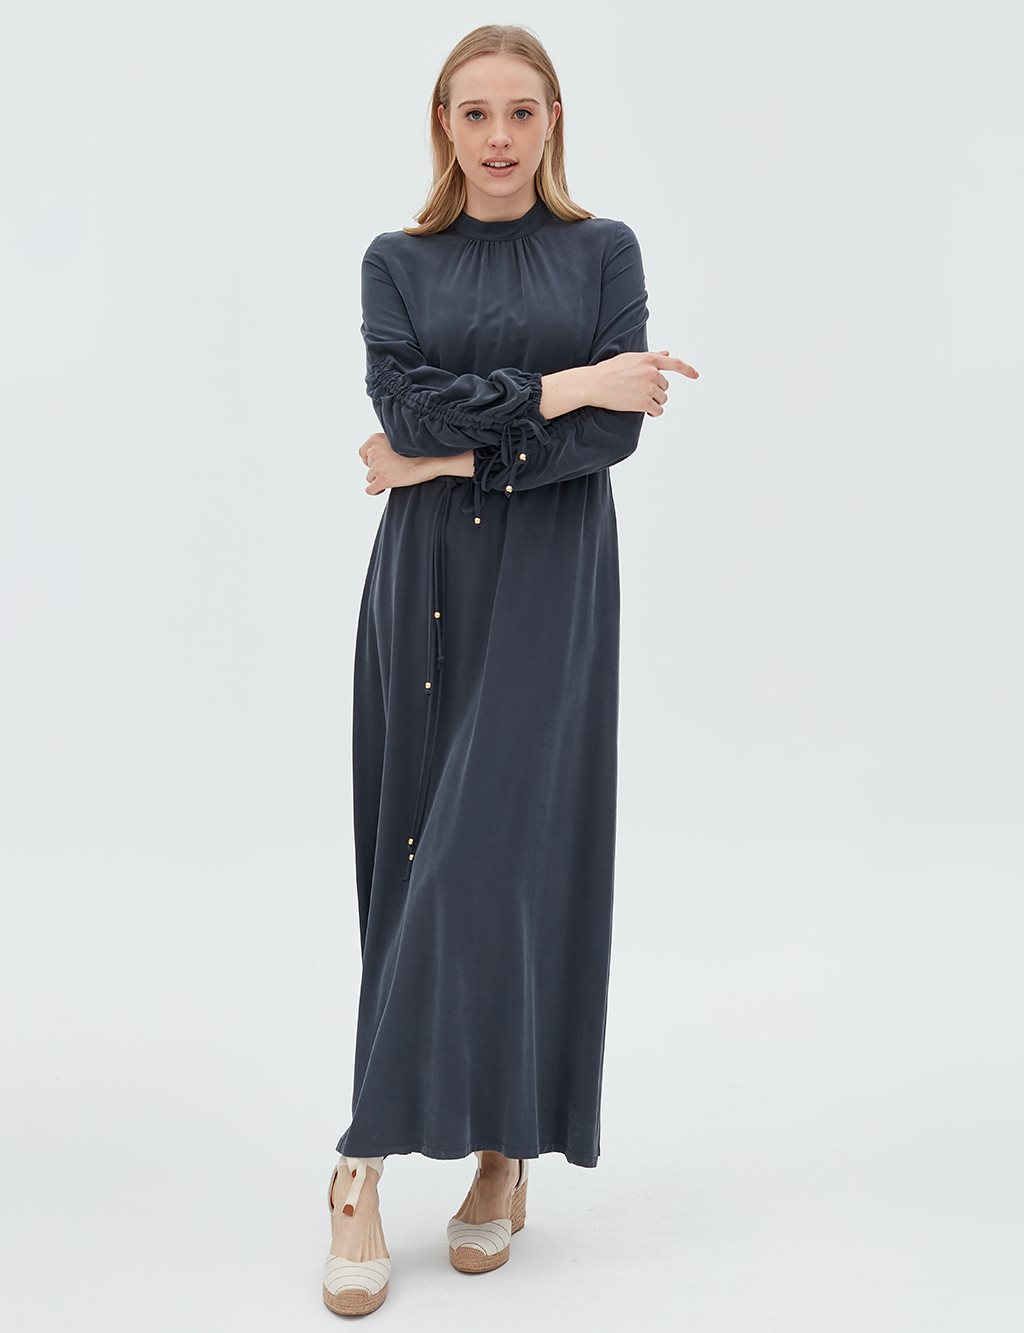 Ruched Sleeve Dress B20 23014 Navy